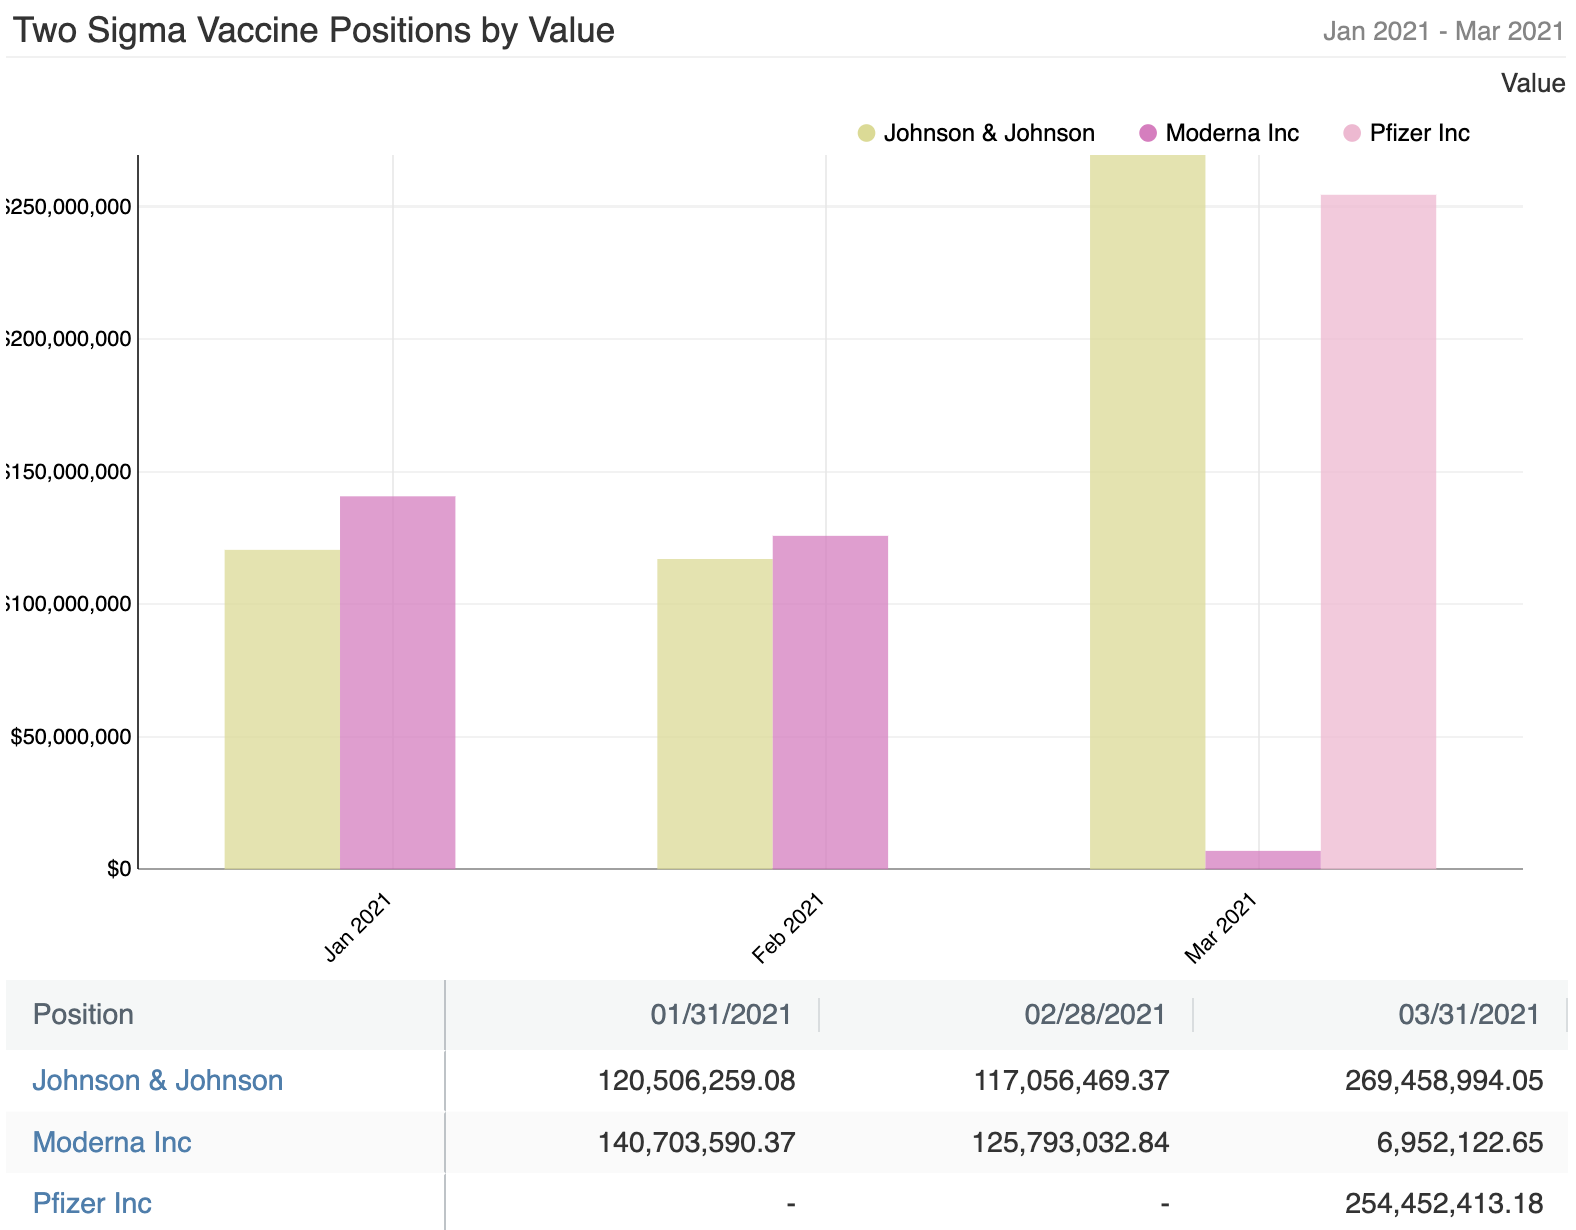 Two Sigma Vaccine Position by Value